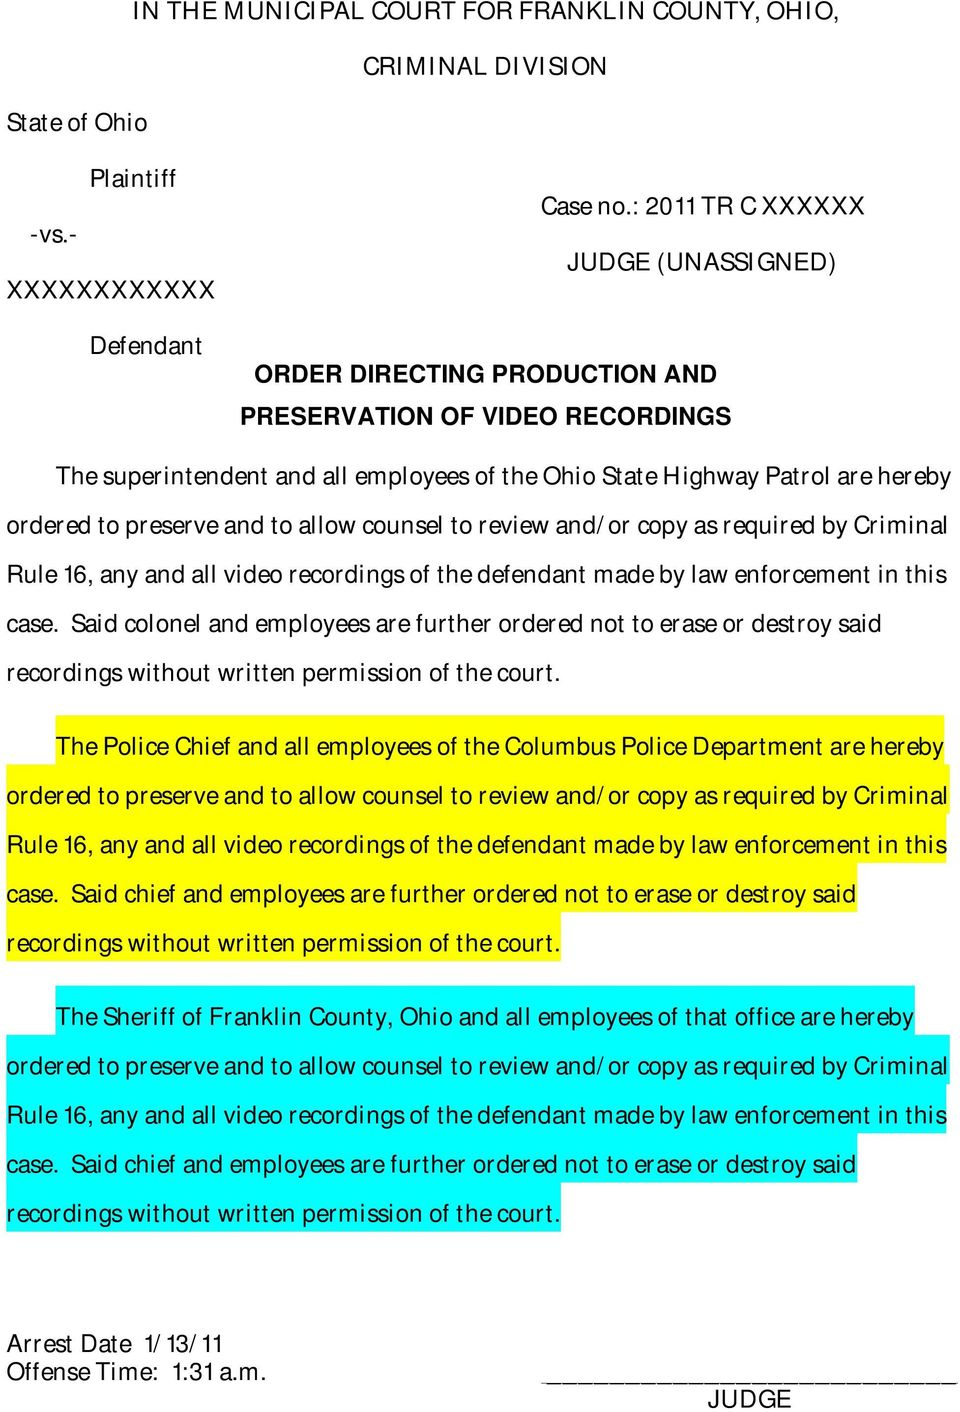 preserve and to allow counsel to review and/or copy as required by Criminal Rule 16, any and all video recordings of the defendant made by law enforcement in this case.